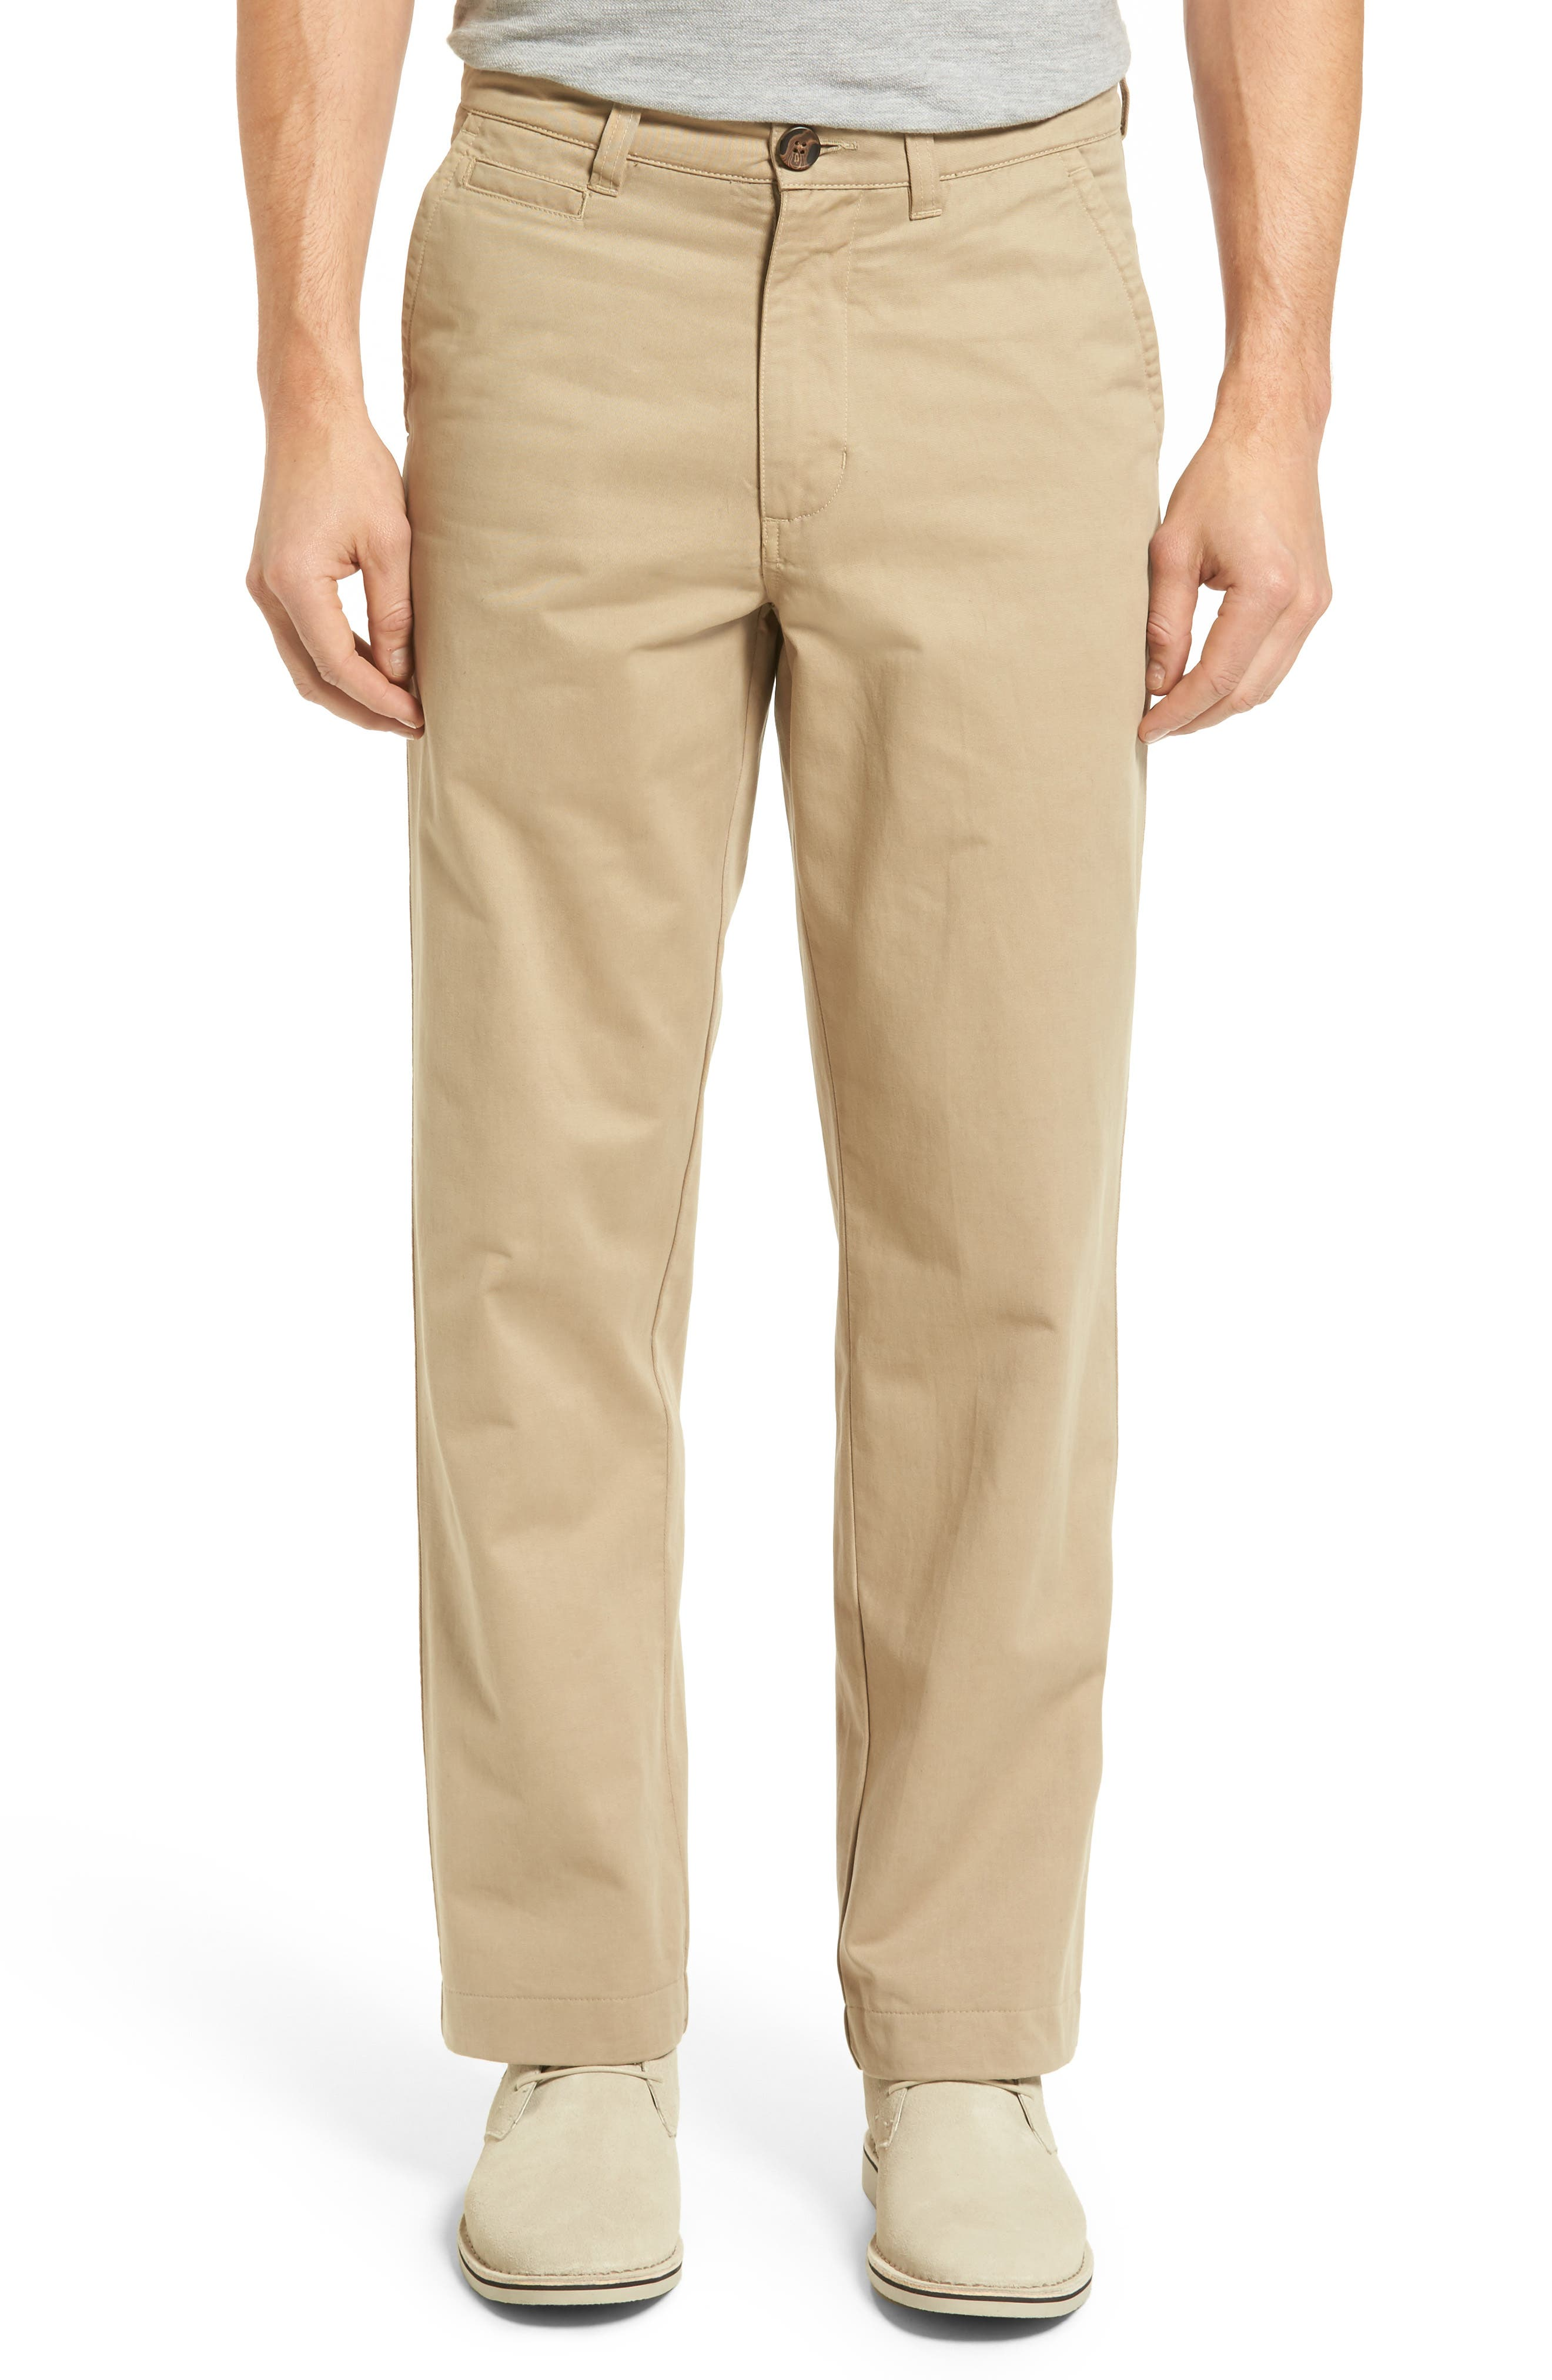 VINTAGE 1946 Classic Fit Military Chinos in British Tan